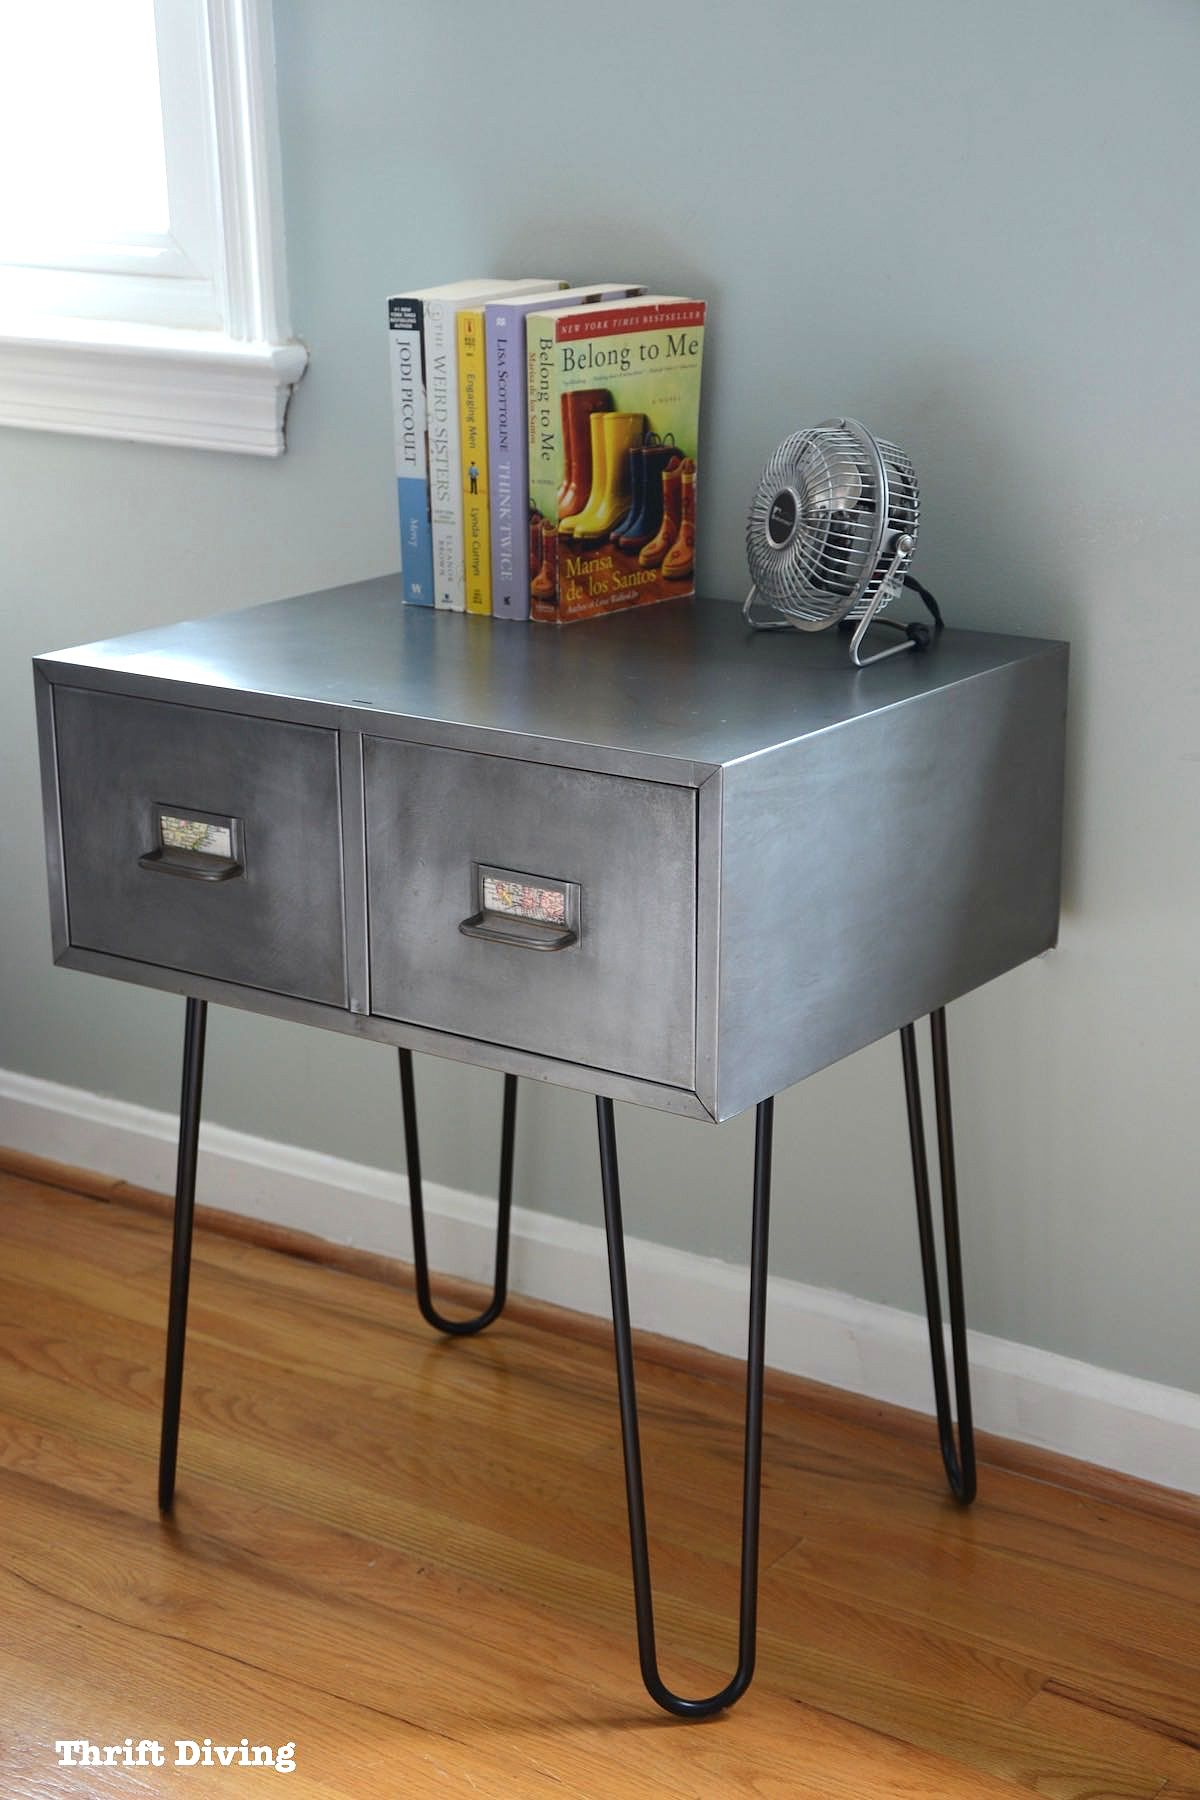 Vintage file cabinet accent table with hairpin legs by Thrift Diving, featured on Funky Junk Interiors